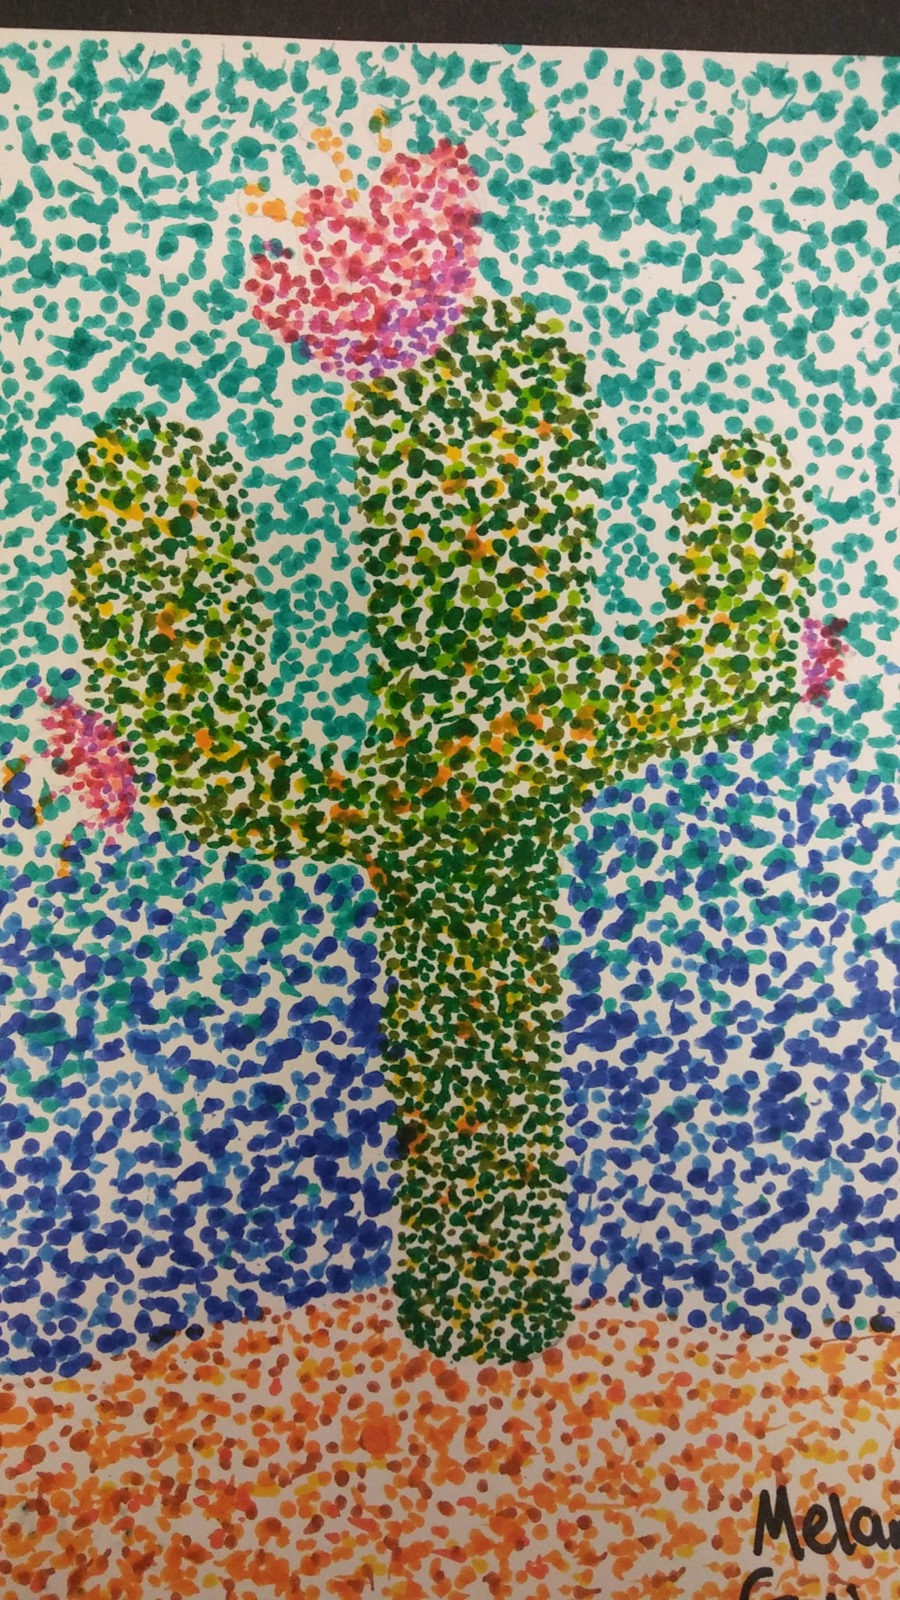 Landmark Student Painting of Cactus